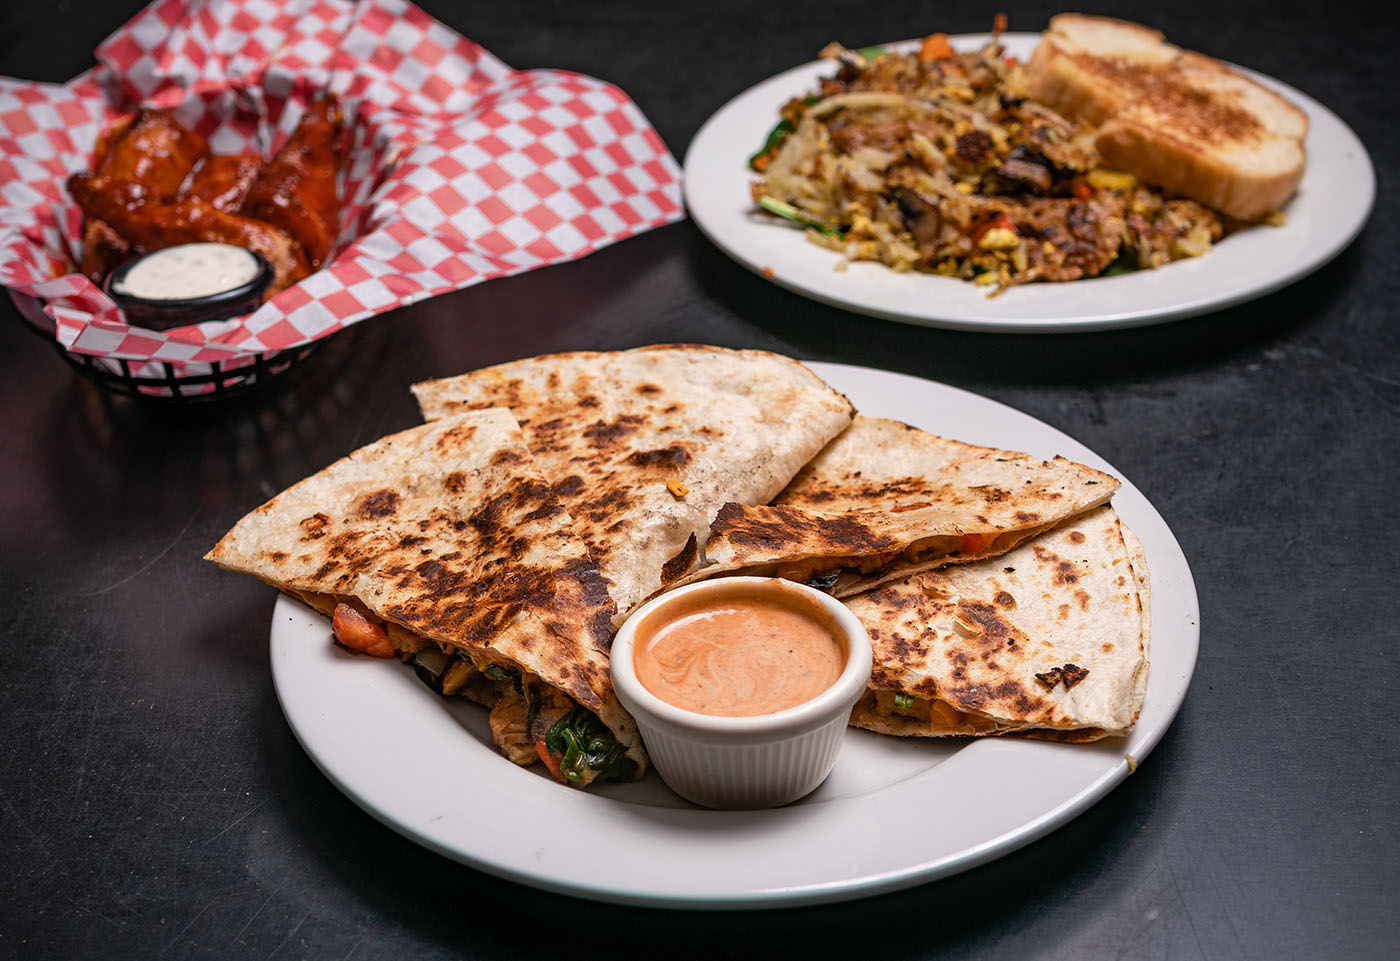 If you're looking for diner food that tastes as good as it feels, Mark of the Beastro has got you covered.